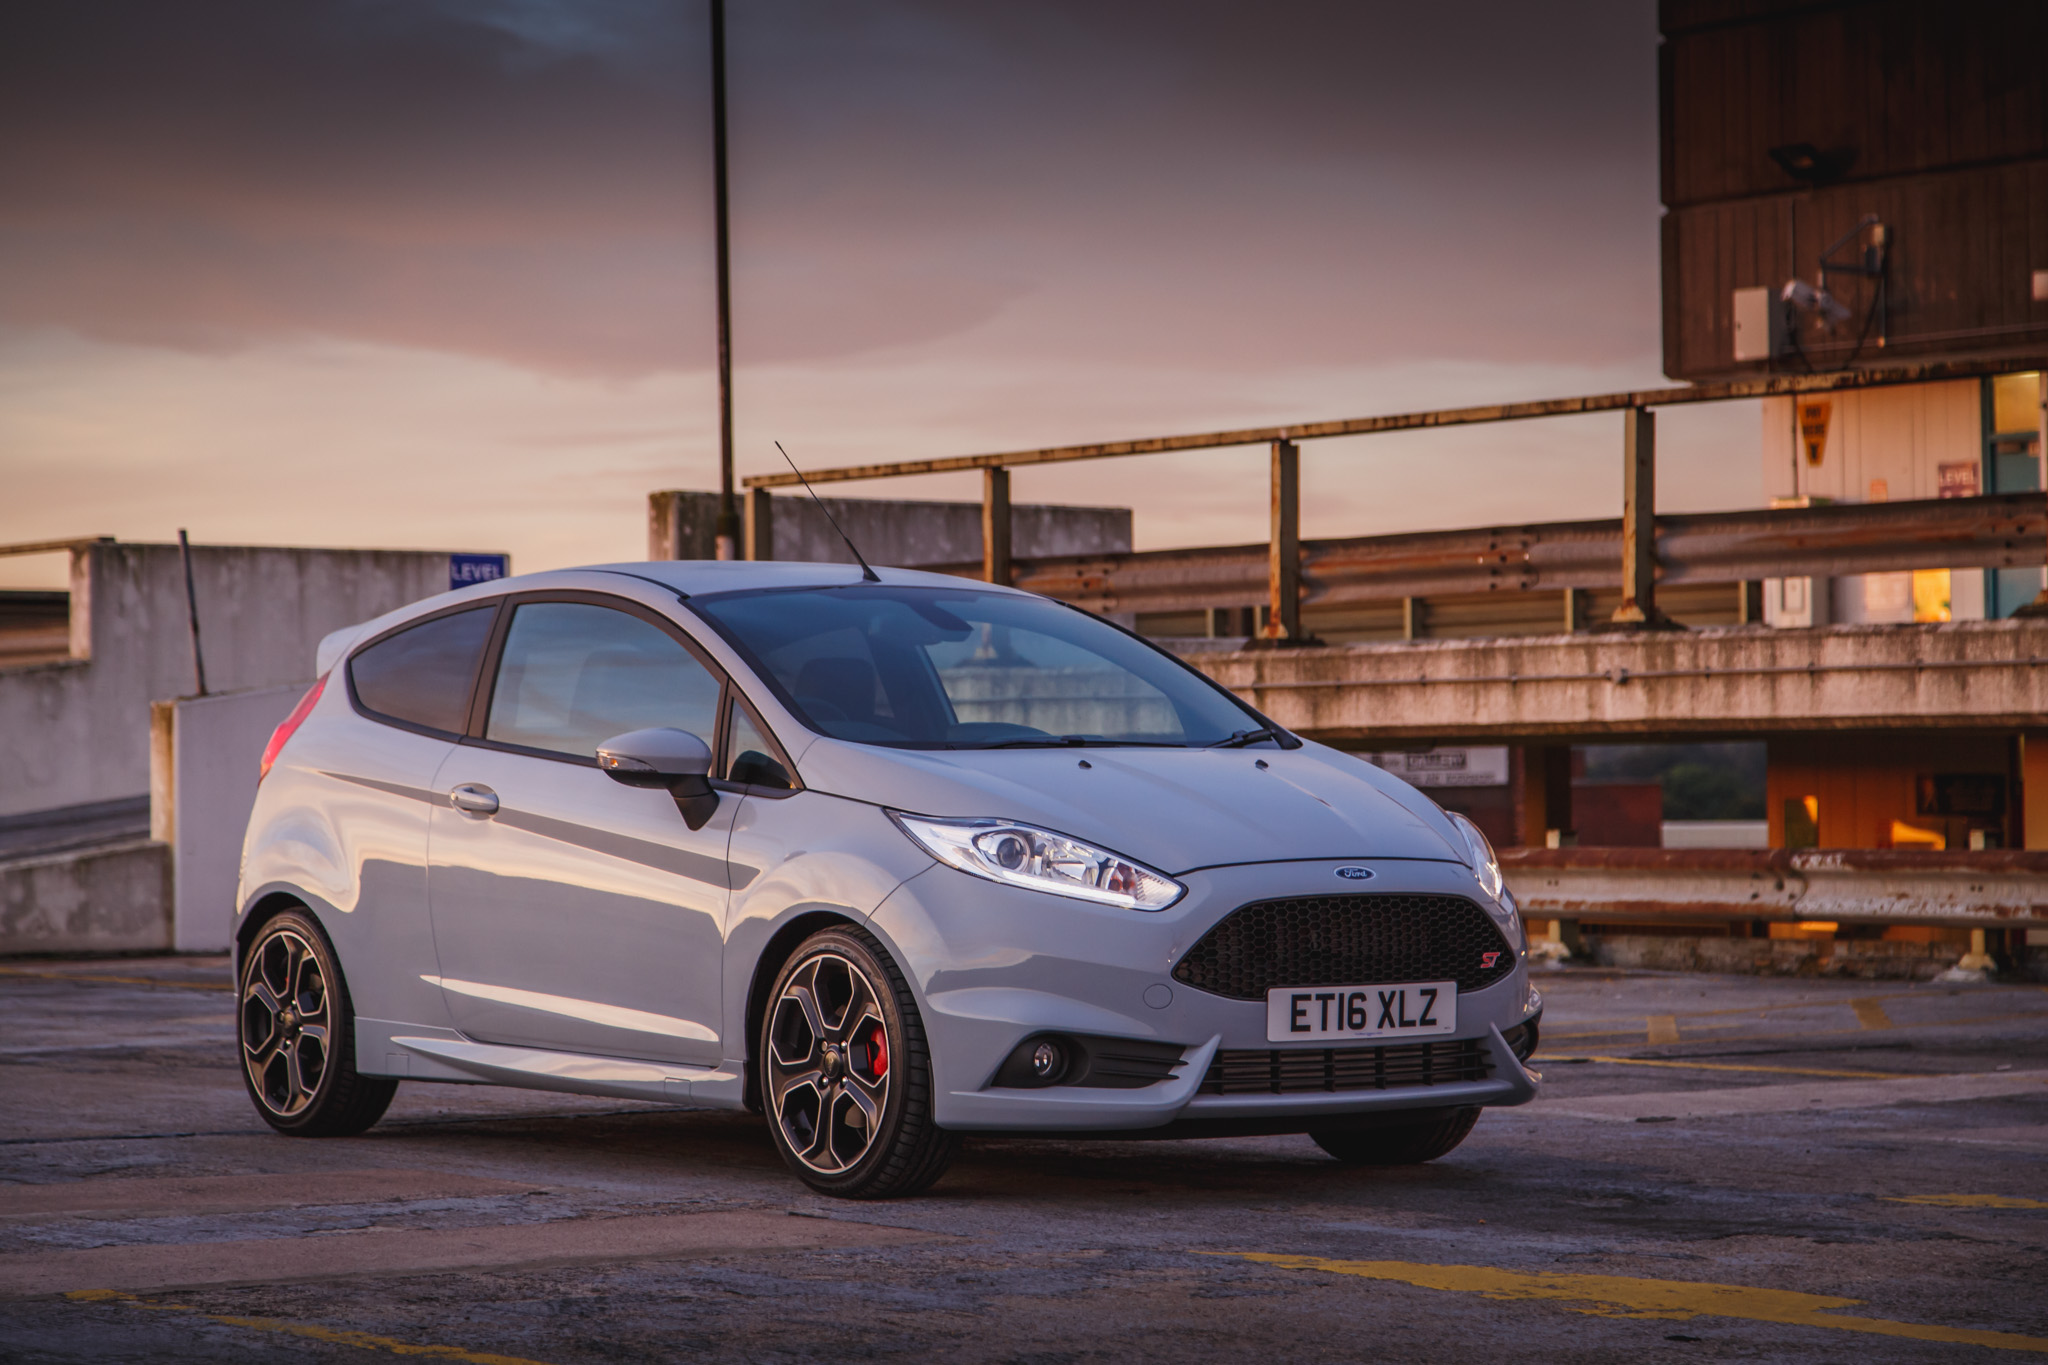 2016 Ford Fiesta St200 Gallery